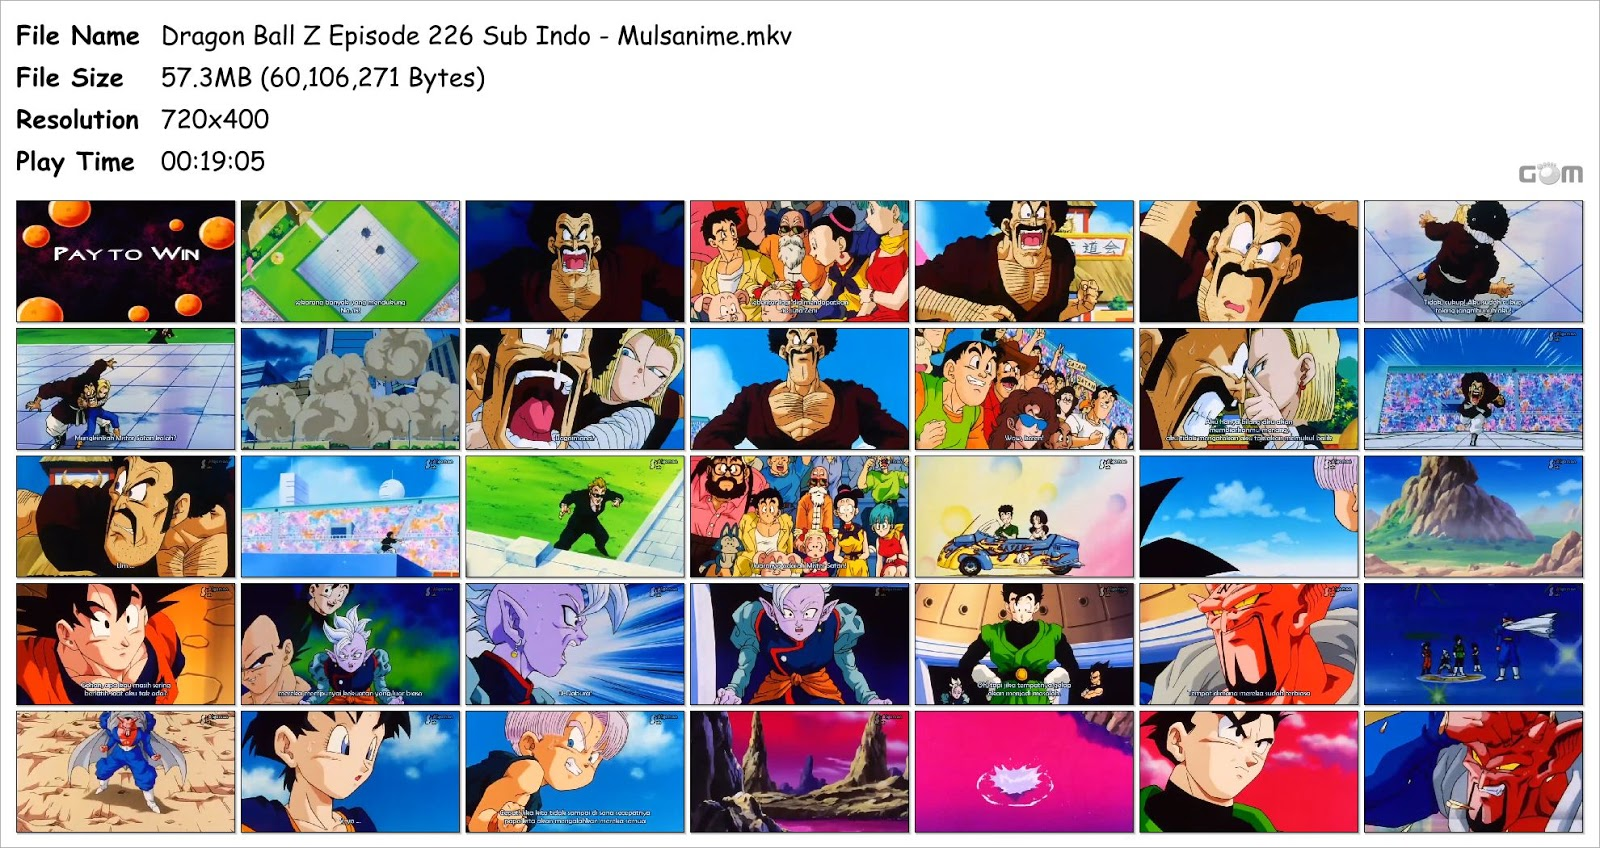 dragon ball z episode 226